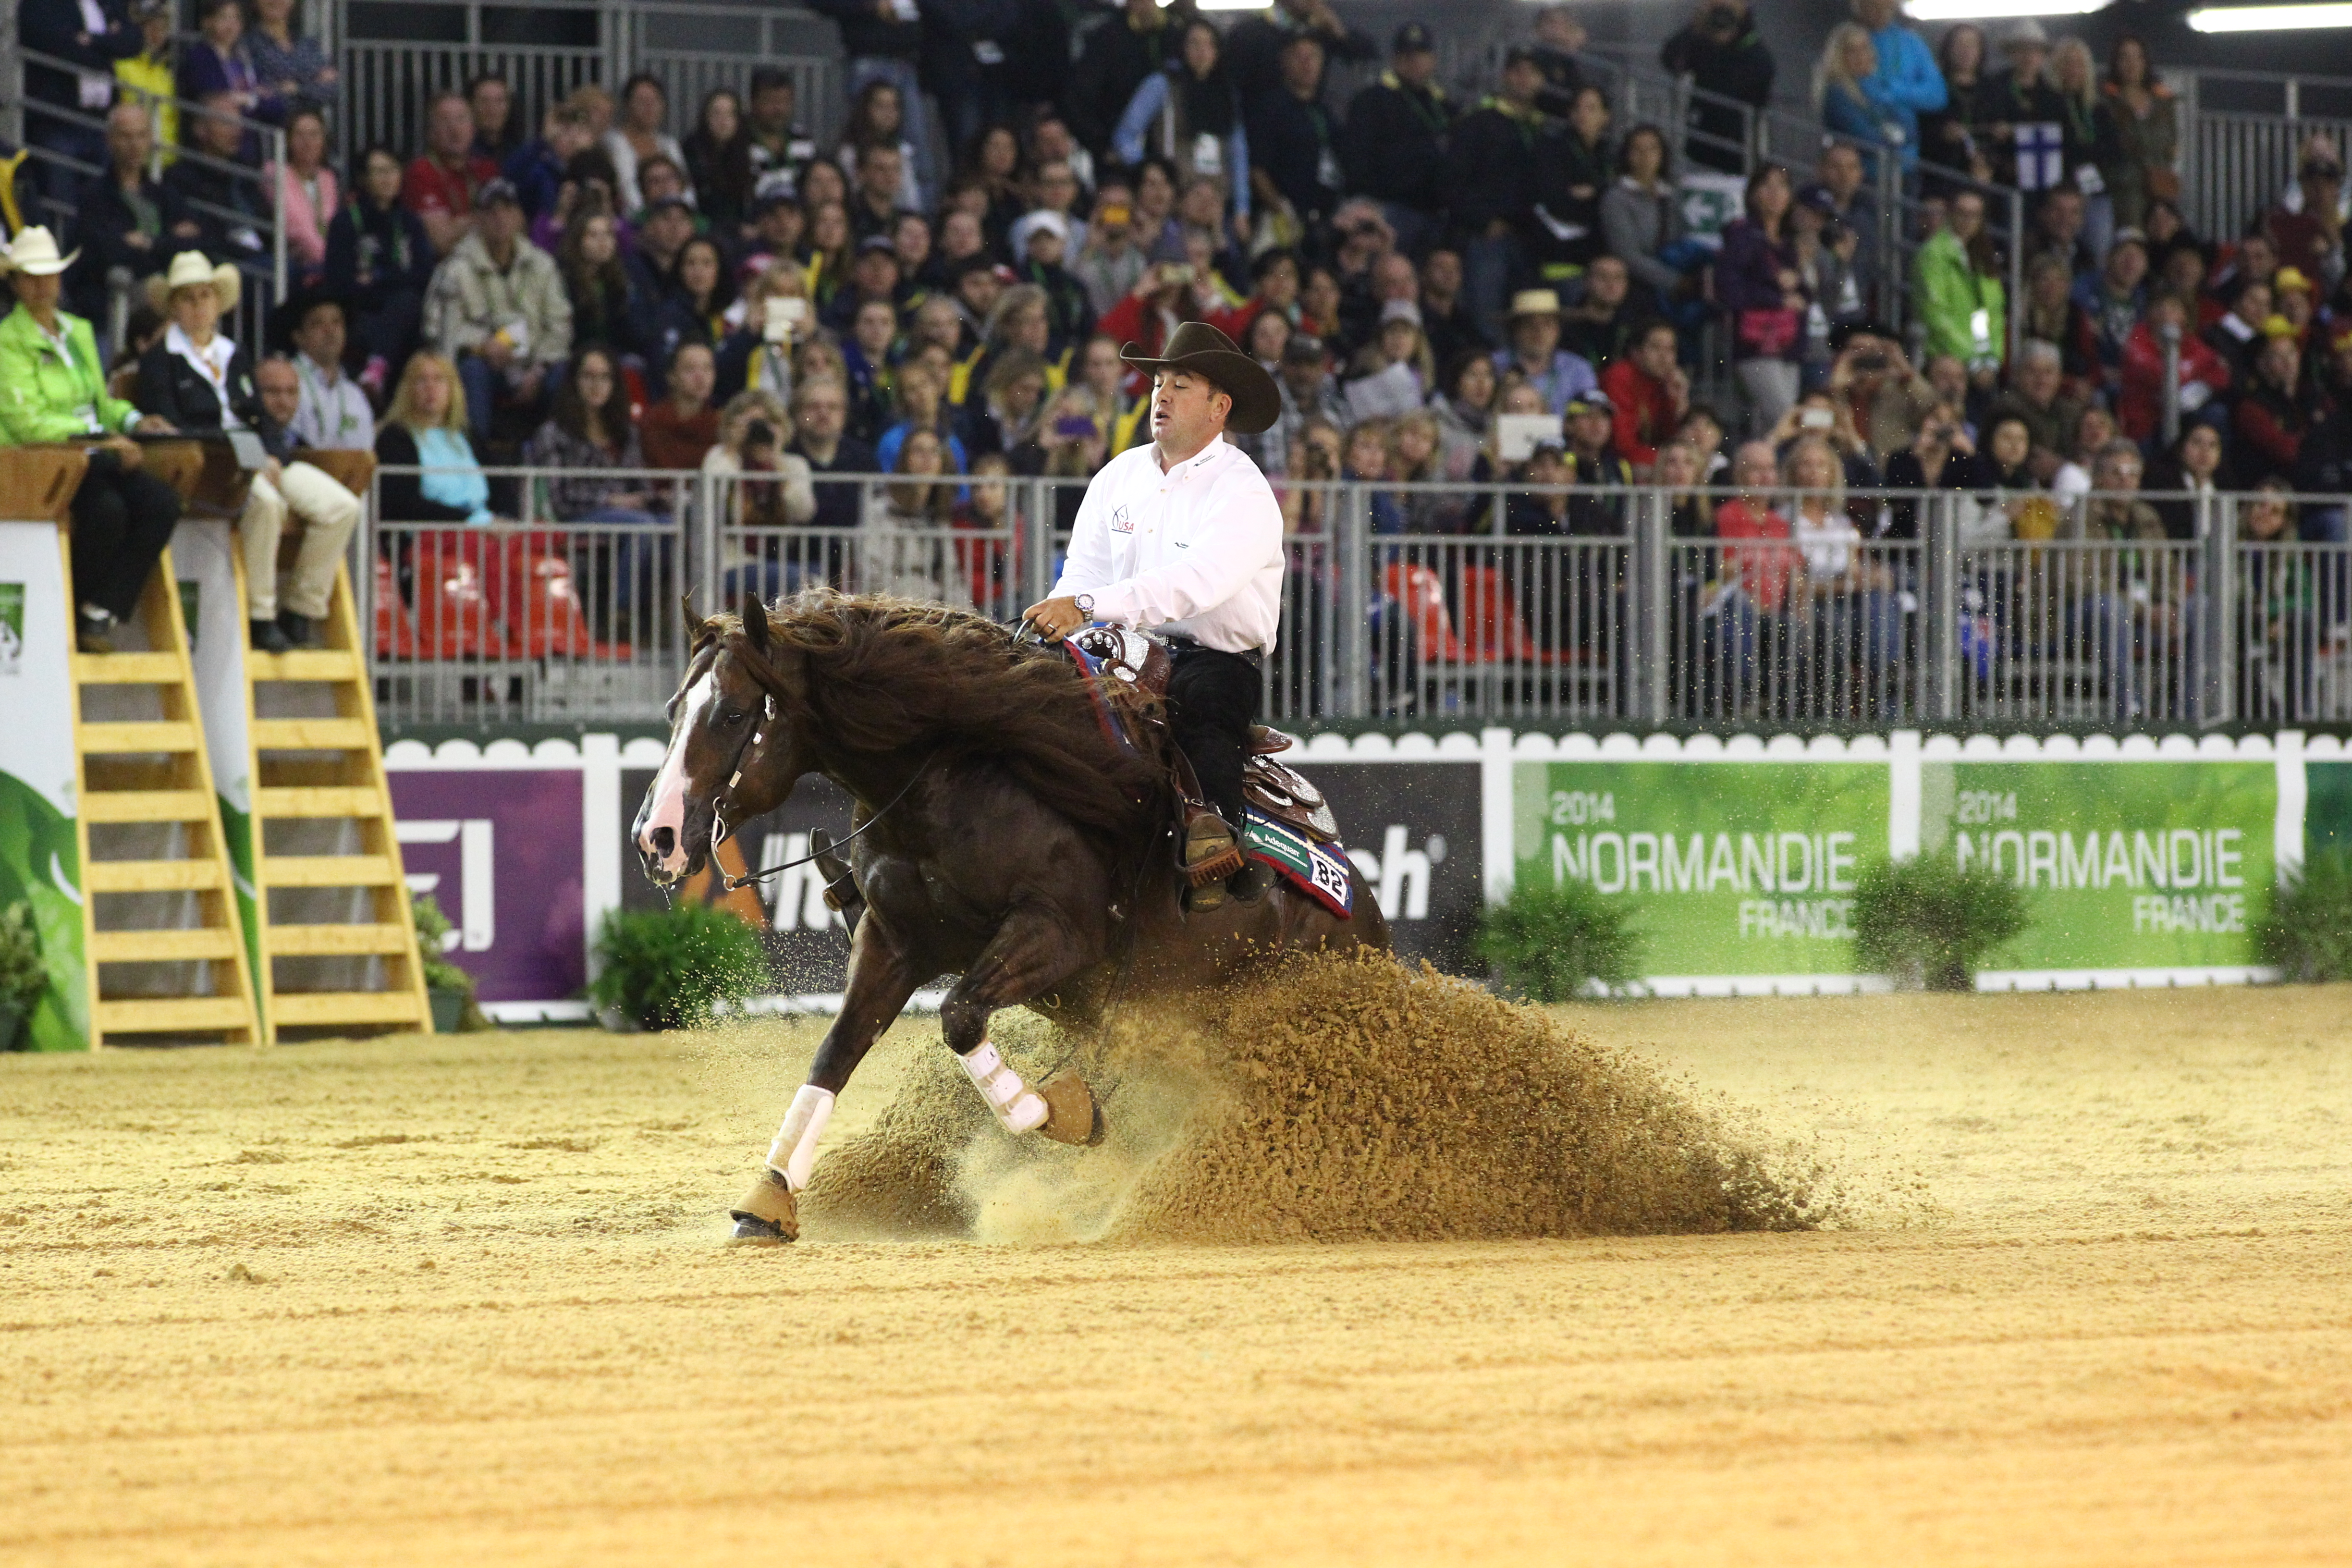 The Usa Claims Team Gold In Reining At The Alltech Fei